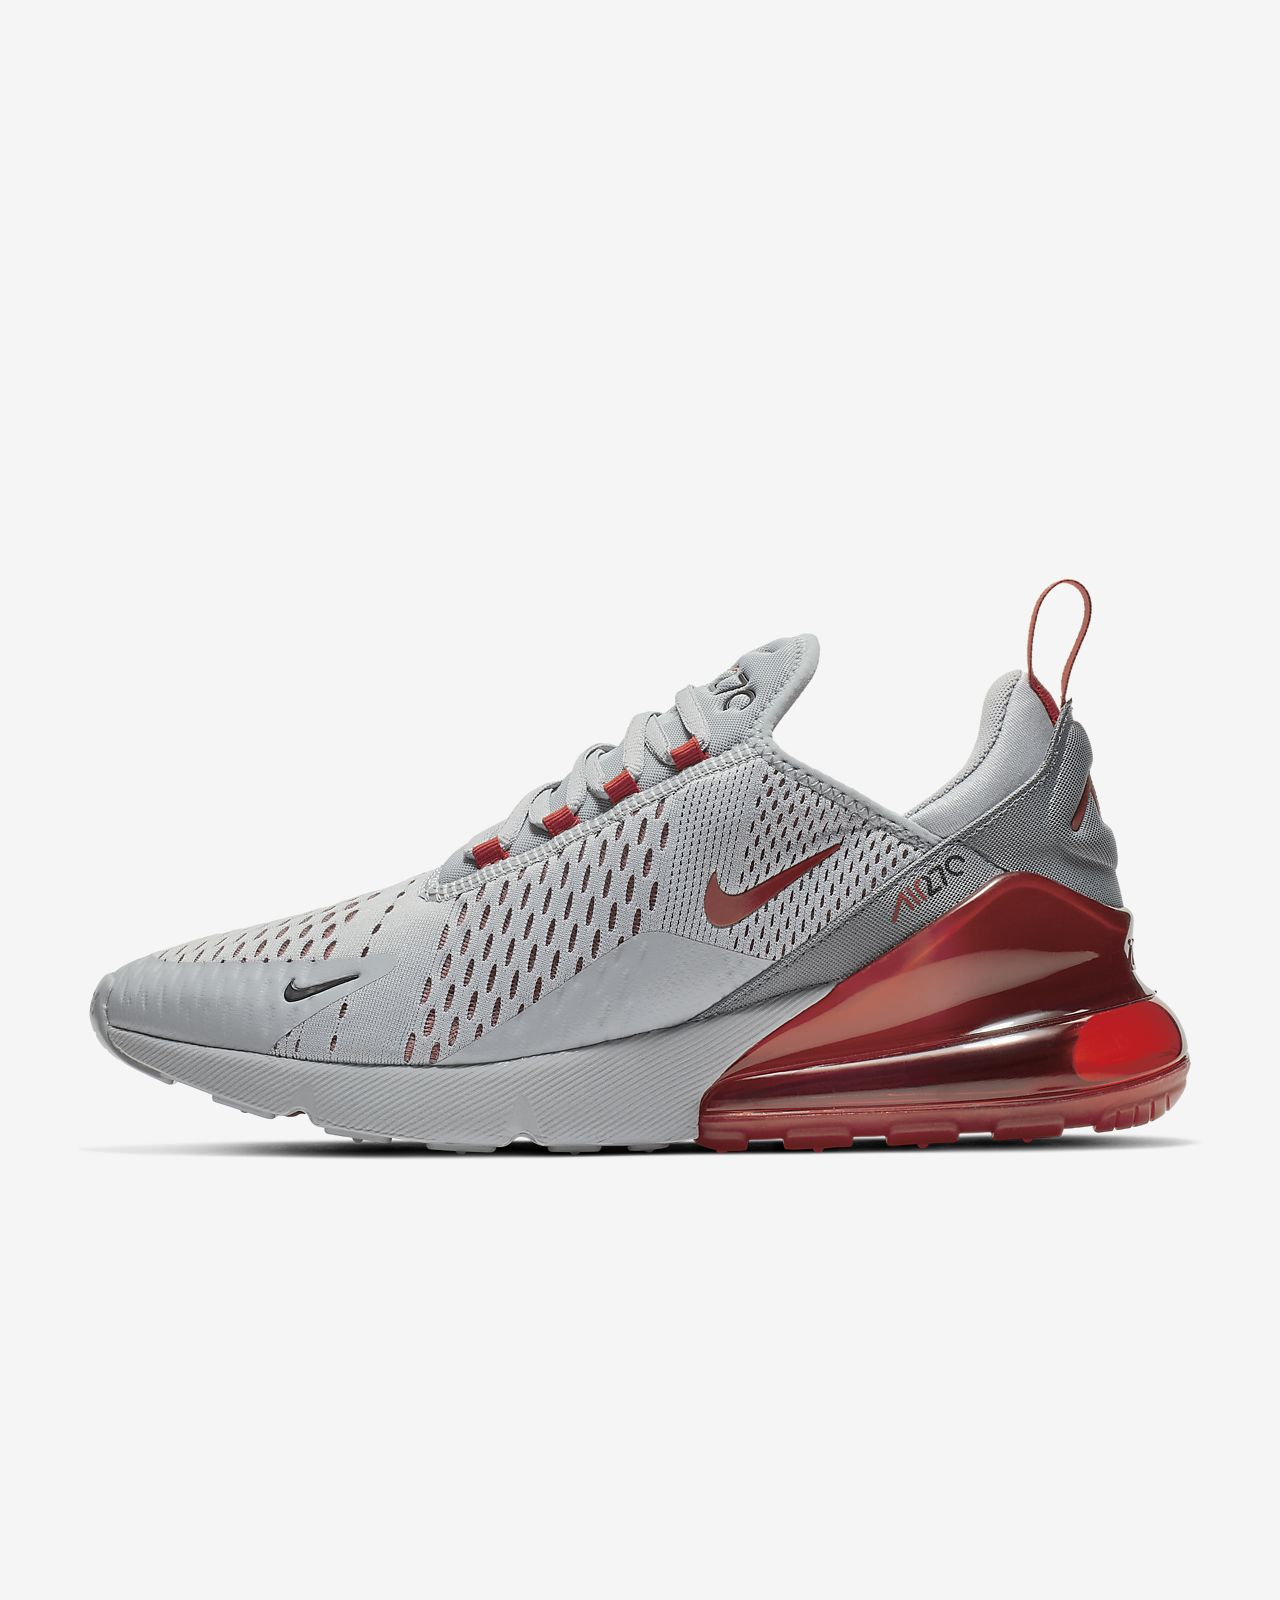 3c8e098e943f Nike Air Max 270 Men s Shoe. Nike.com ID